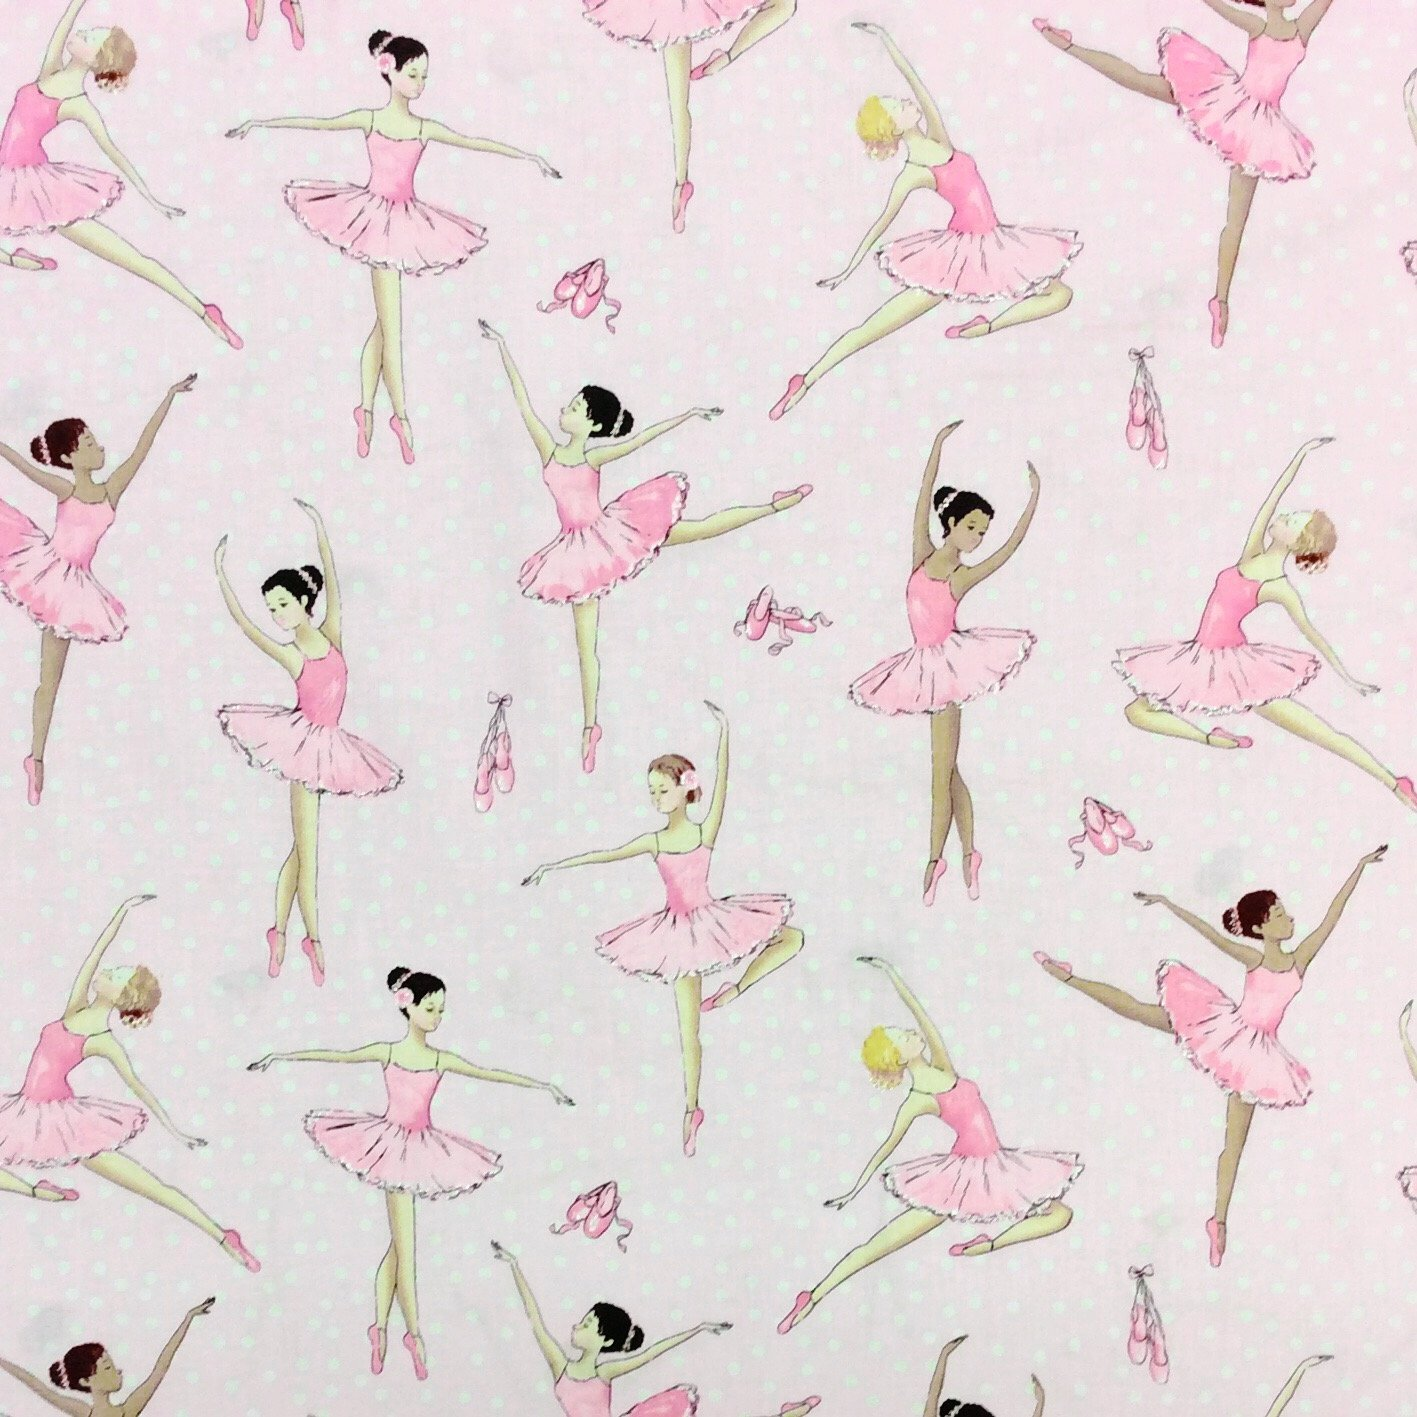 Ballerina dance ballet shoes tutu dots kids pink cute for Kids pattern fabric